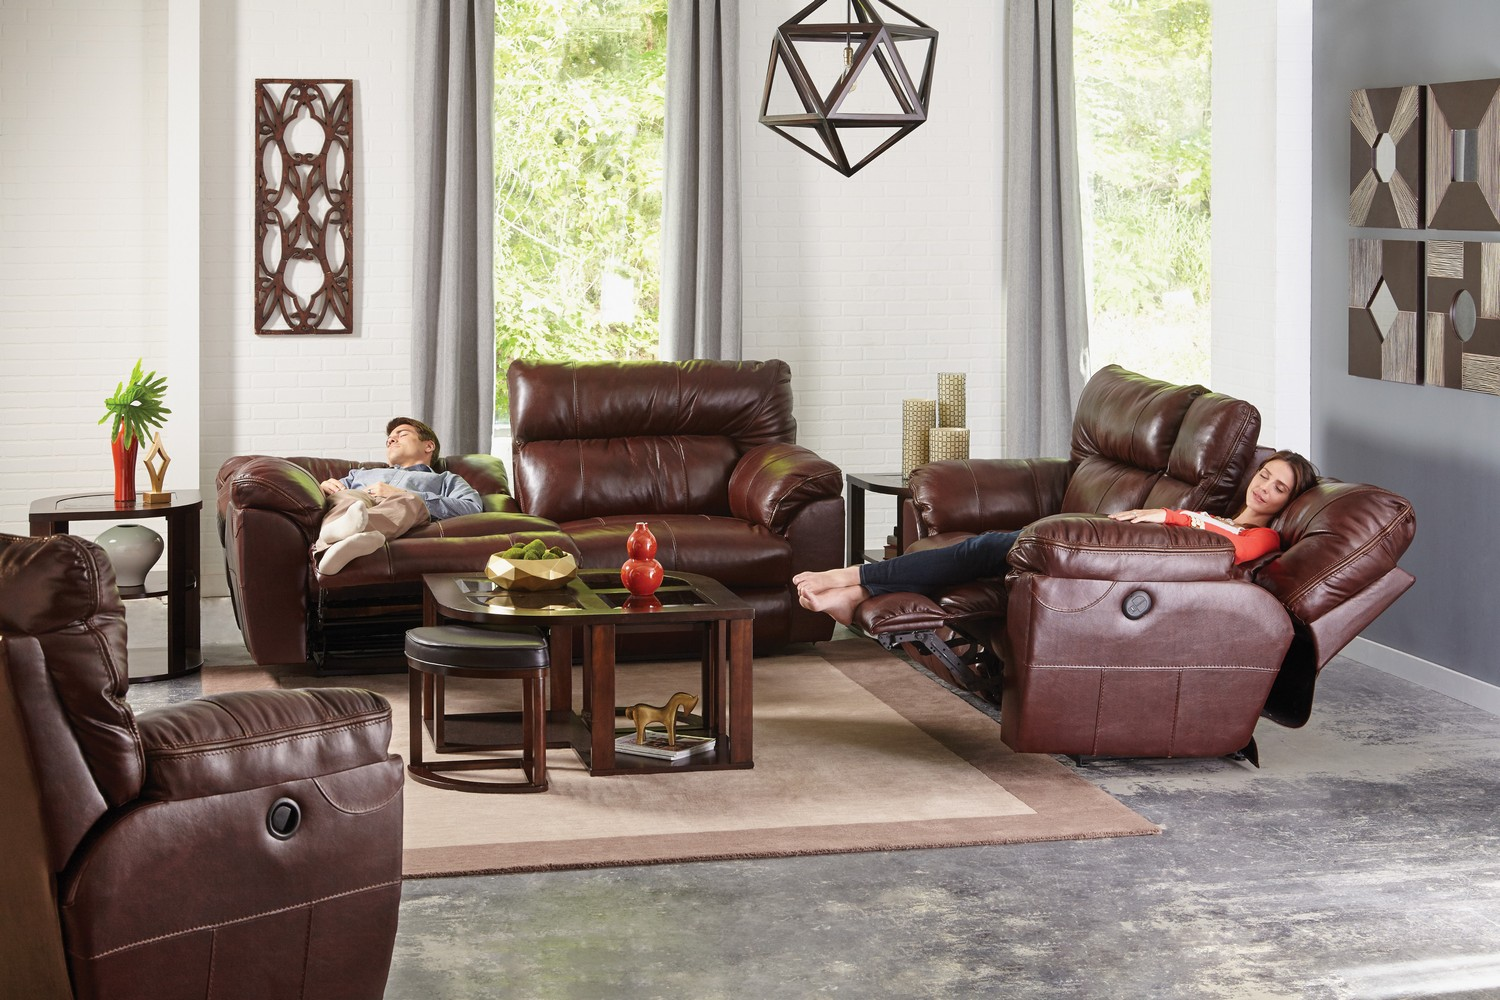 CatNapper Milan Power Lay Flat Reclining Sofa Set - Walnut